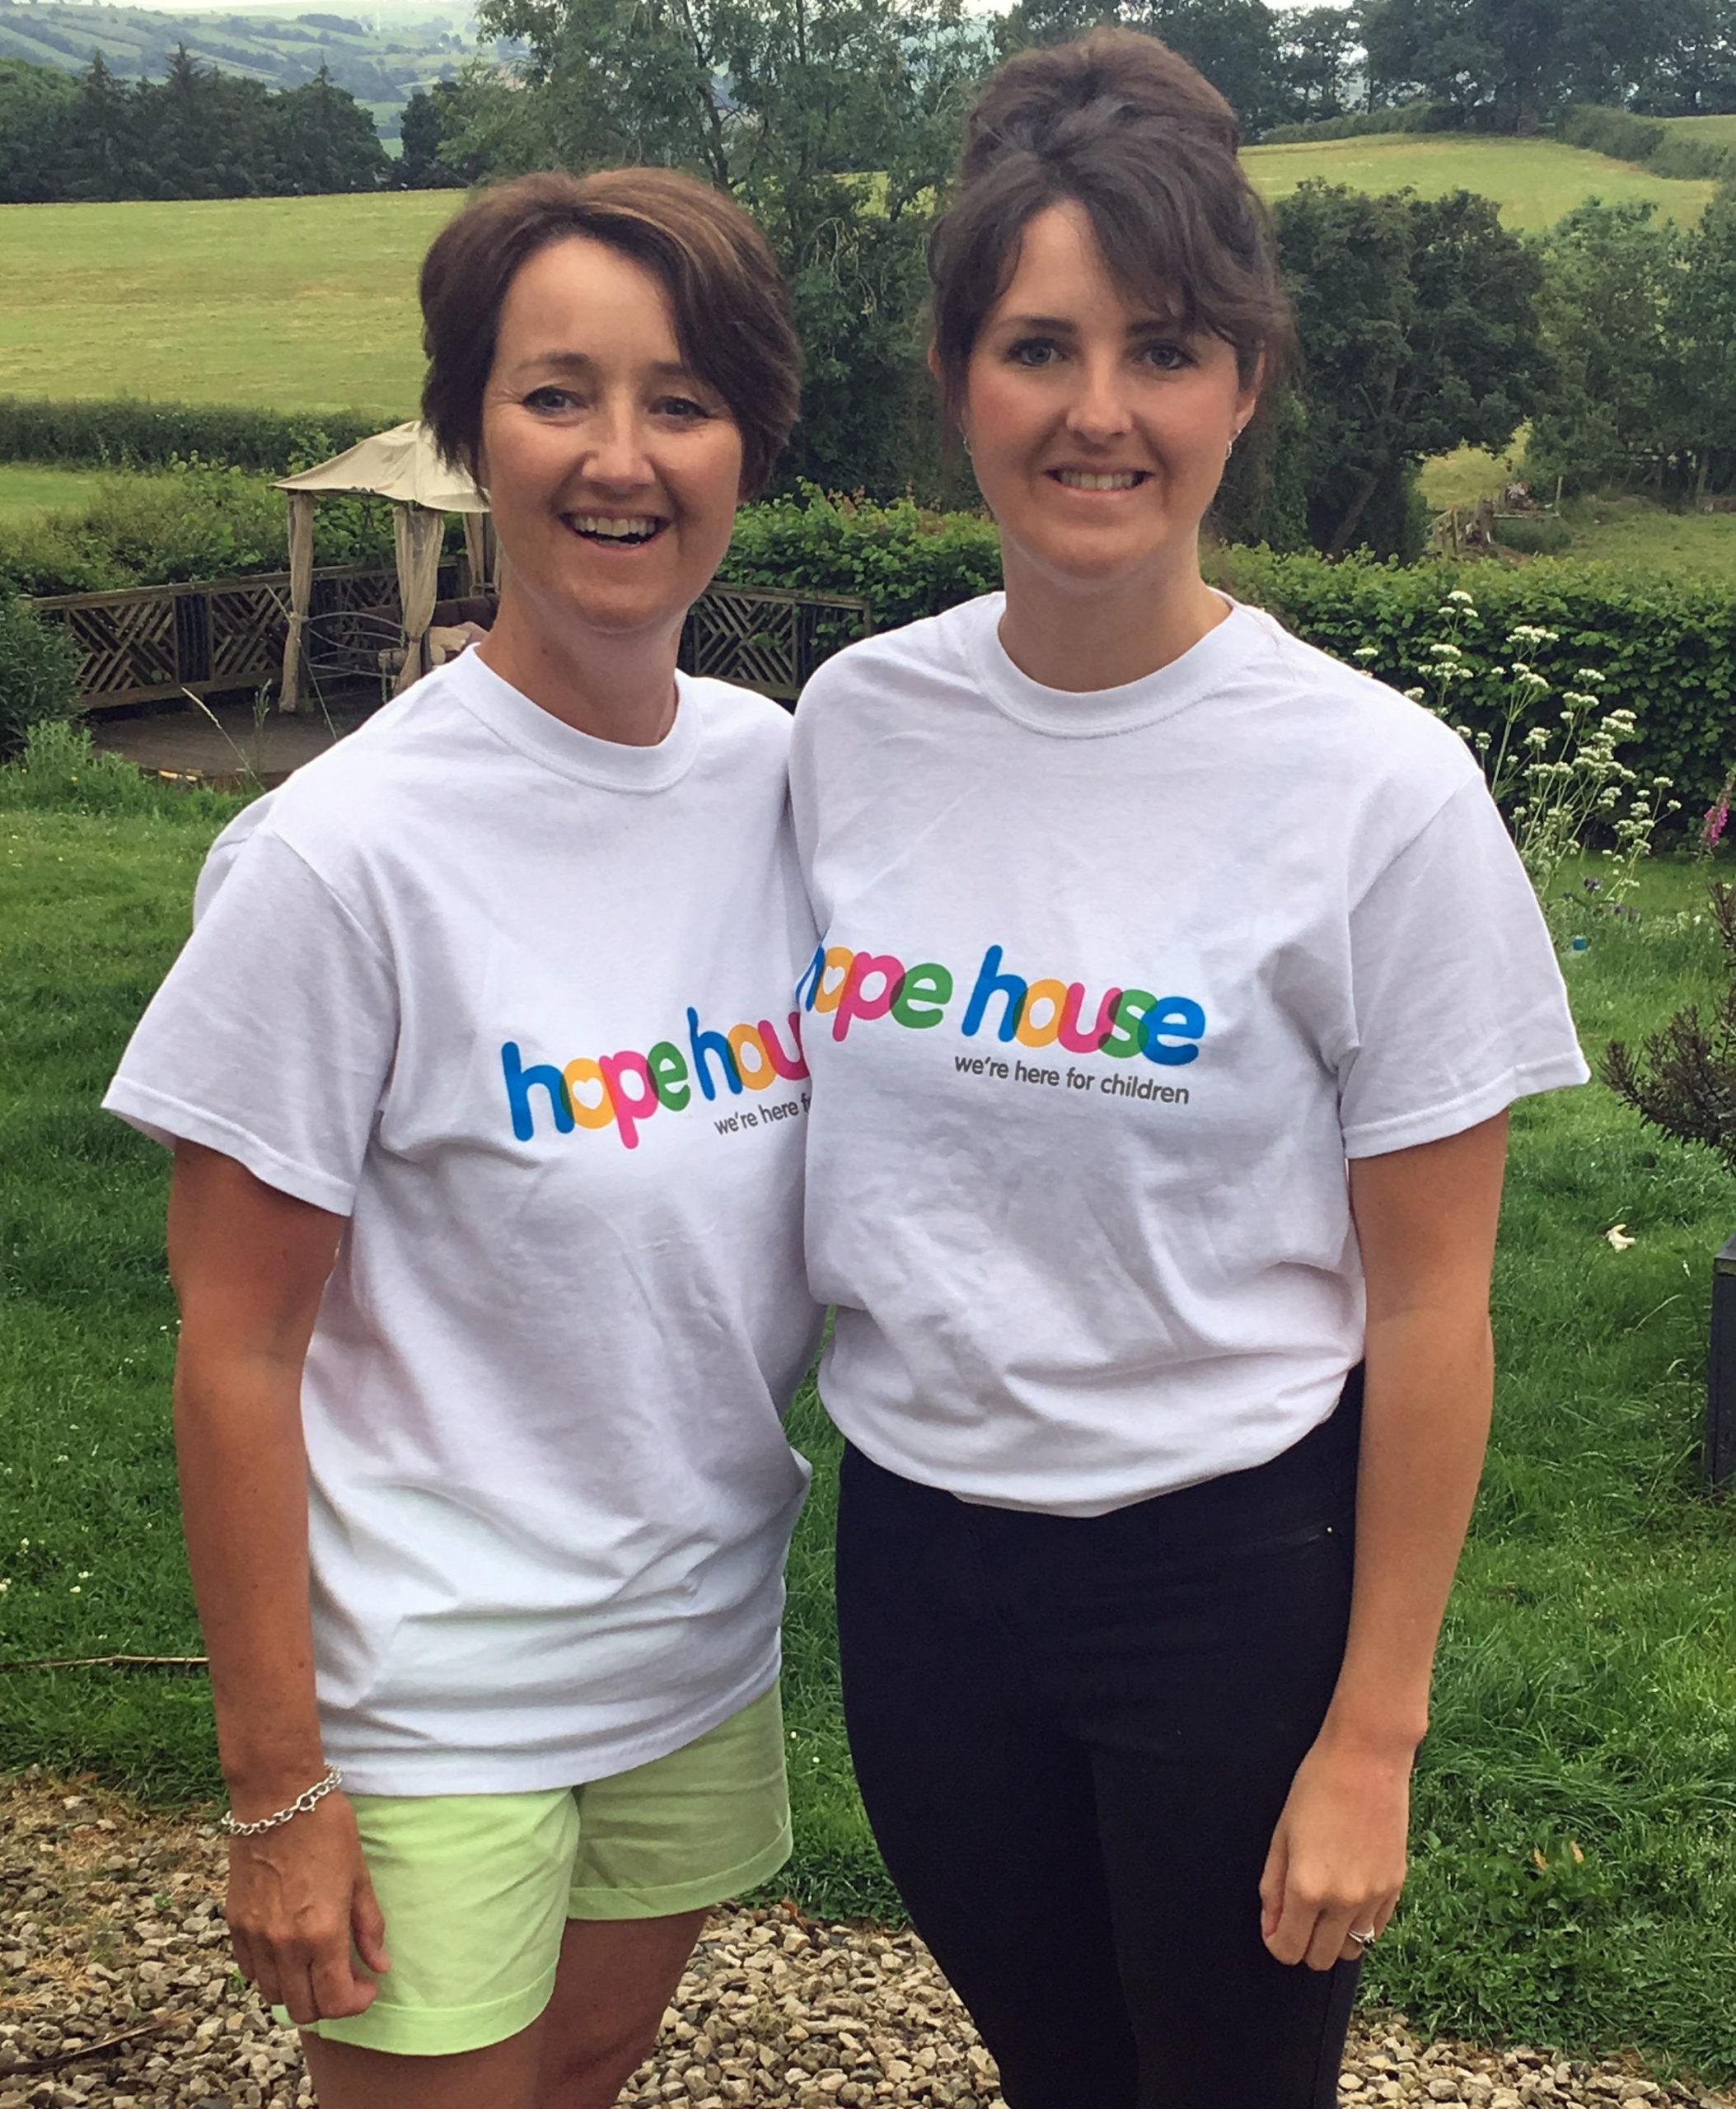 Family member inspires mum and daughter to walk across Wales